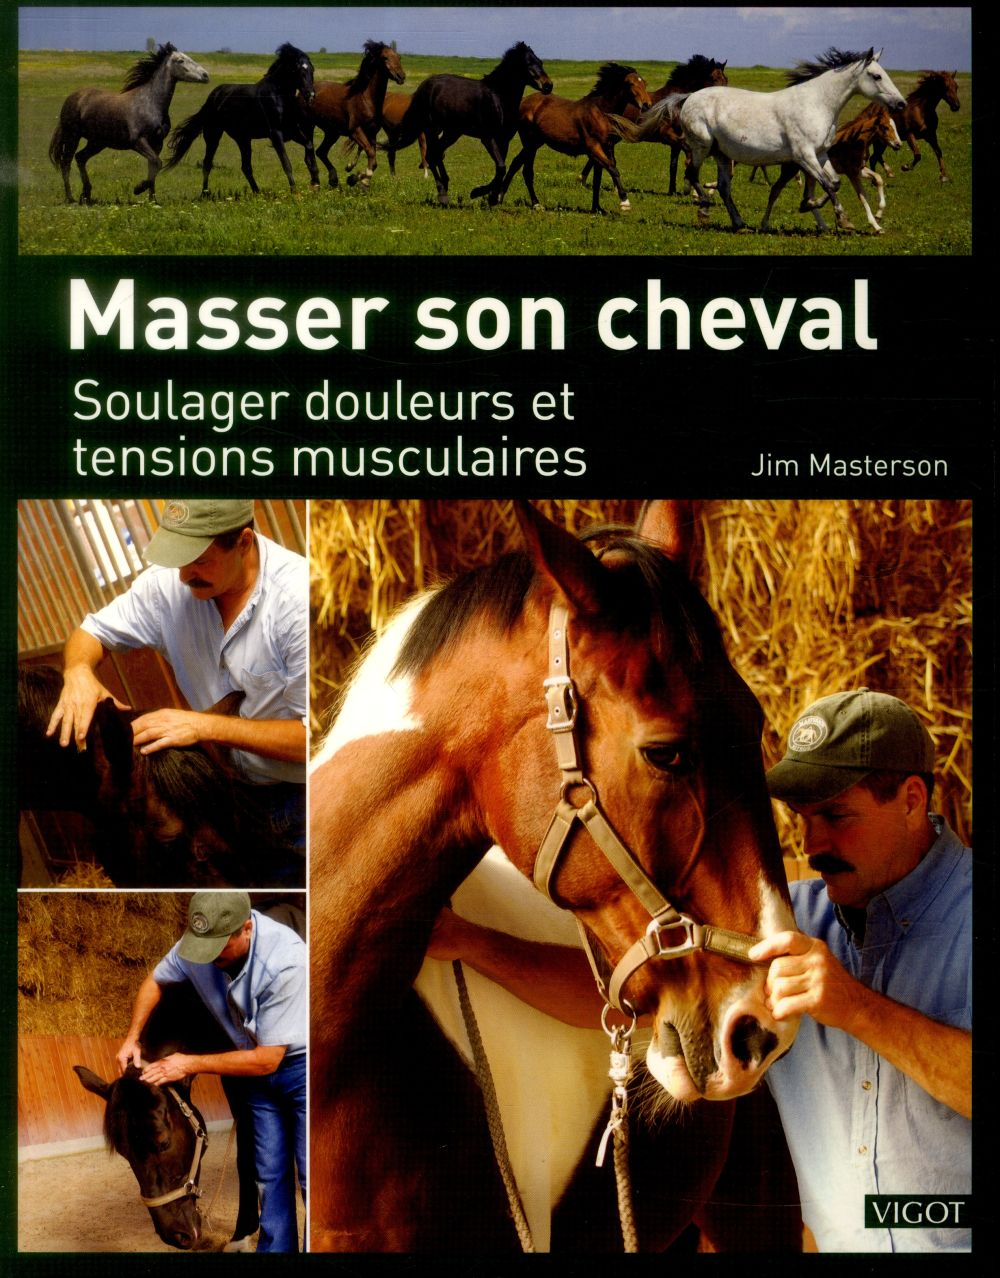 Masser son cheval ; soulager douleurs et tensions musculaires